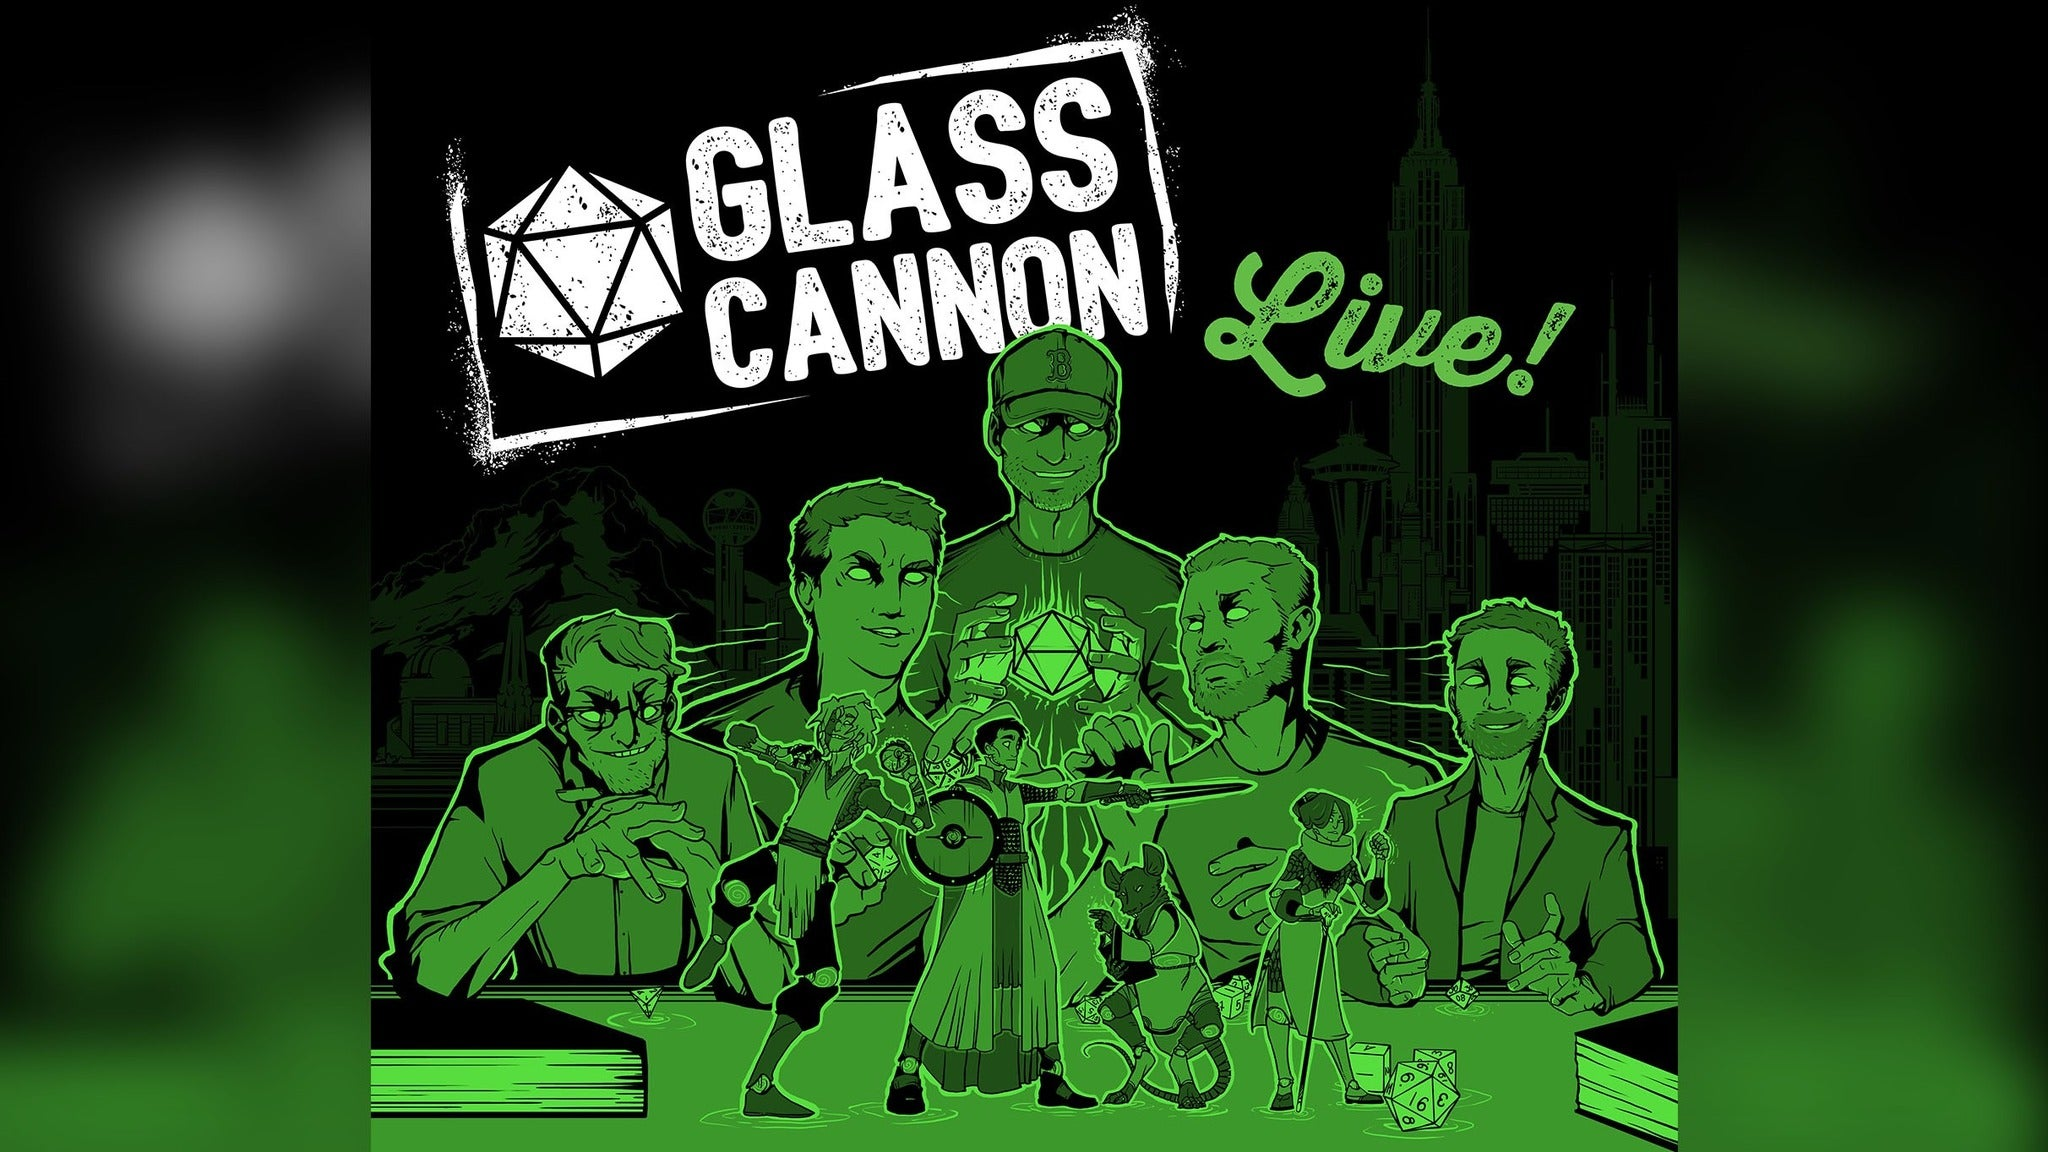 Glass Cannon Live!